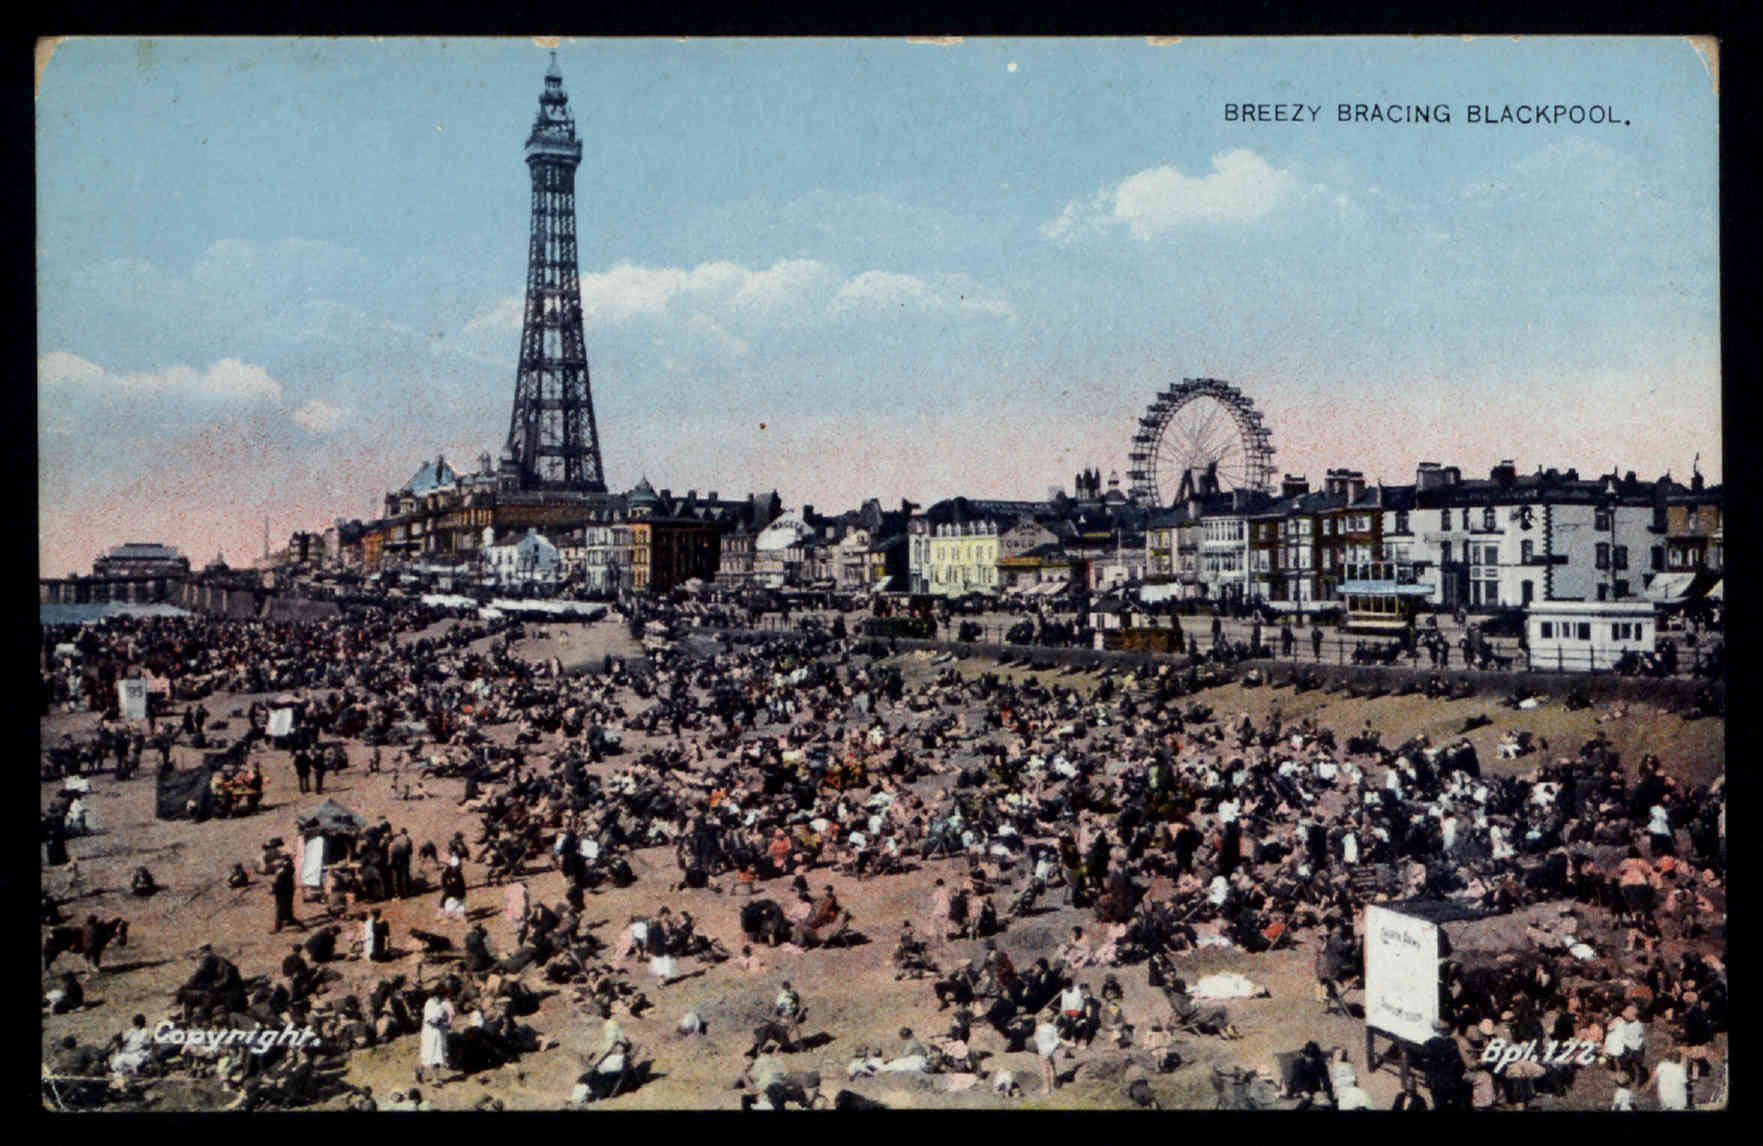 Breezy Bracing Blackpool. Copyright Cyril Critchlow Collection, Local and Family History Centre, Blackpool Central Library